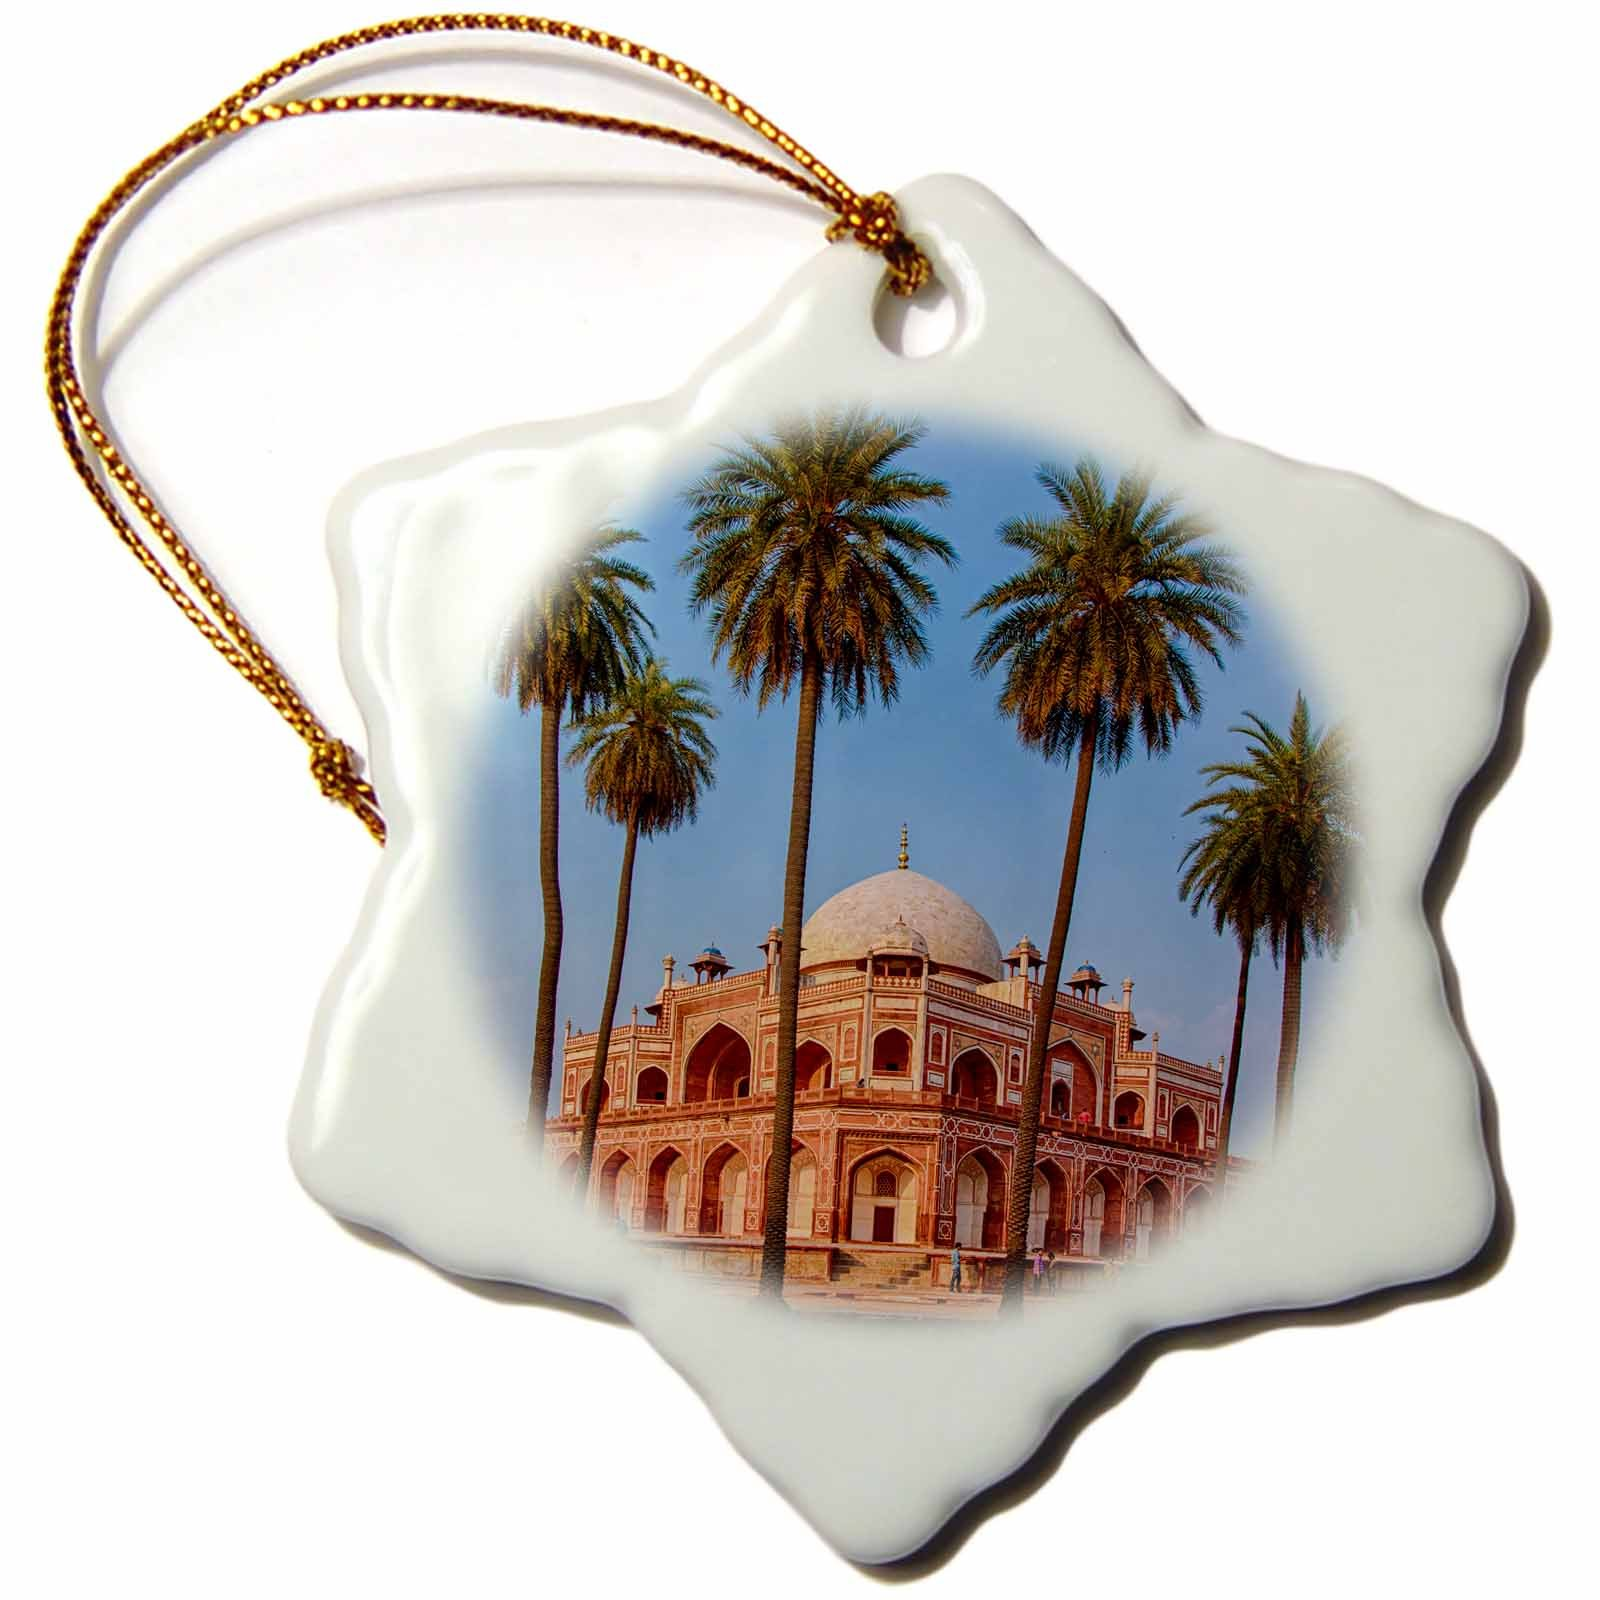 3dRose Danita Delimont - Travel - India. Exterior view of Humayuns Tomb in New Delhi. - 3 inch Snowflake Porcelain Ornament (orn_276785_1)